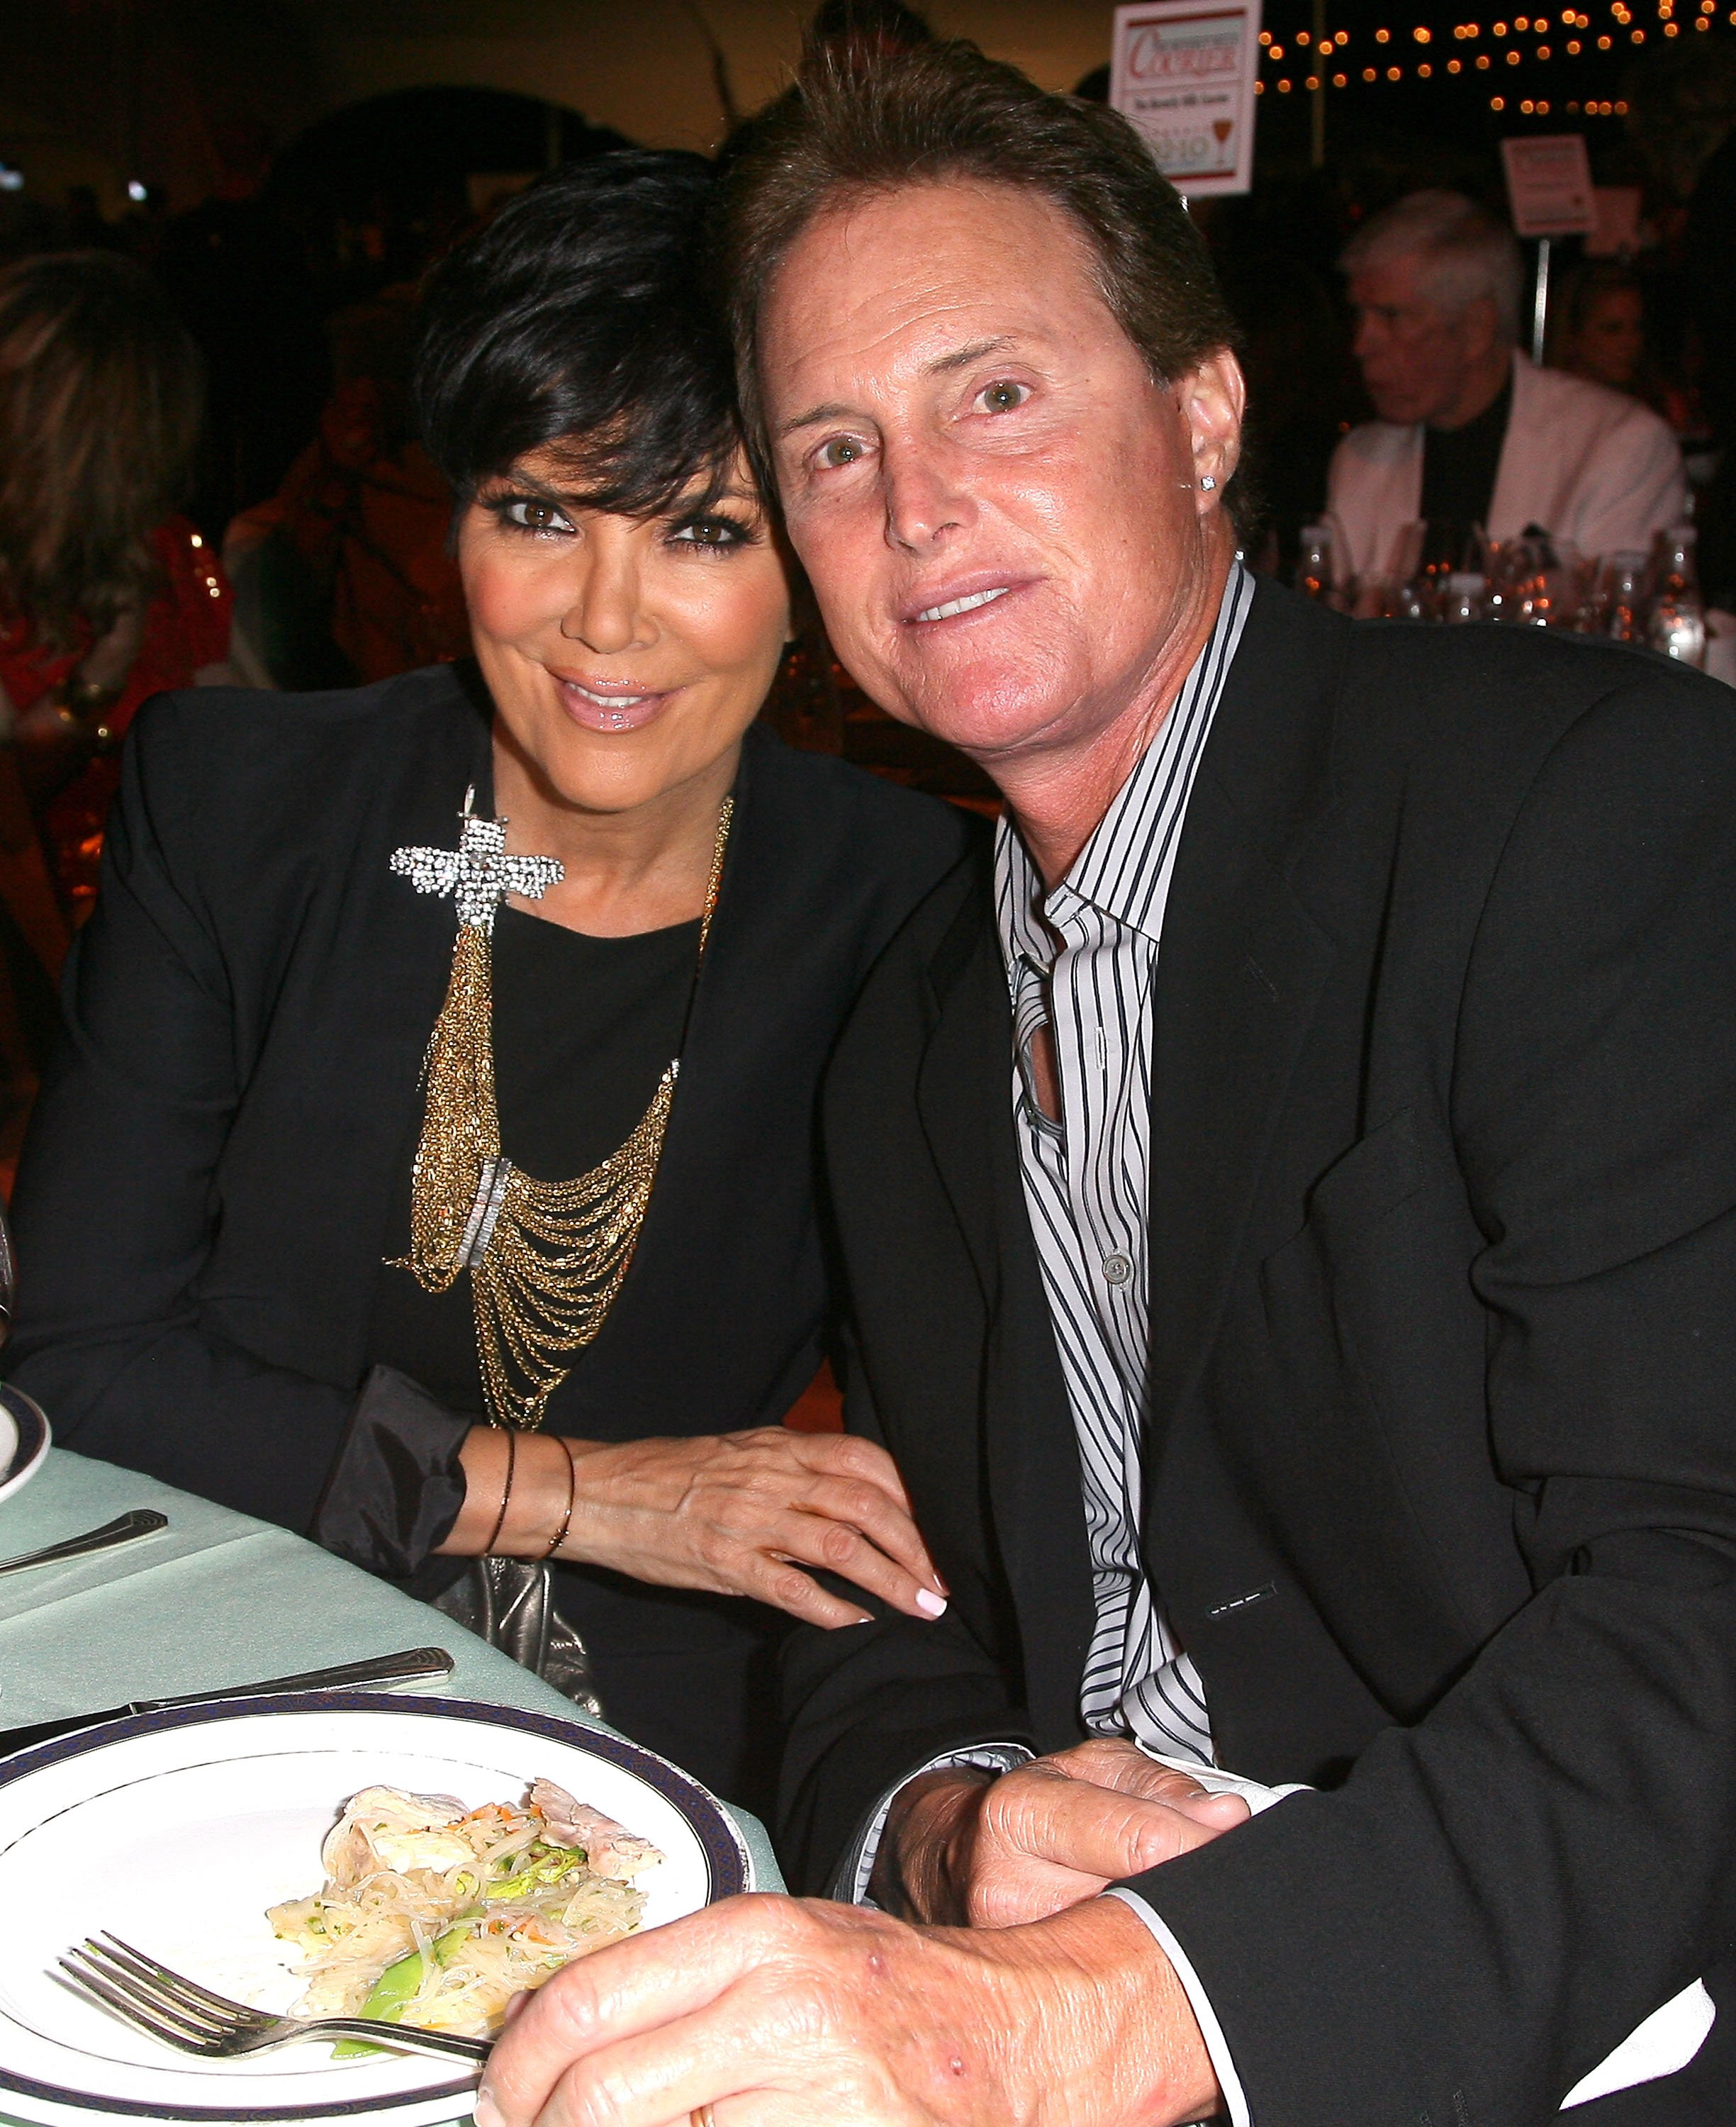 Kris Jenner and Bruce Jenner attend the Taste Of Beverly Hills Wine & Food Festival Opening Night on September 2, 2010 in Beverly Hills, California | Photo: GettyImages